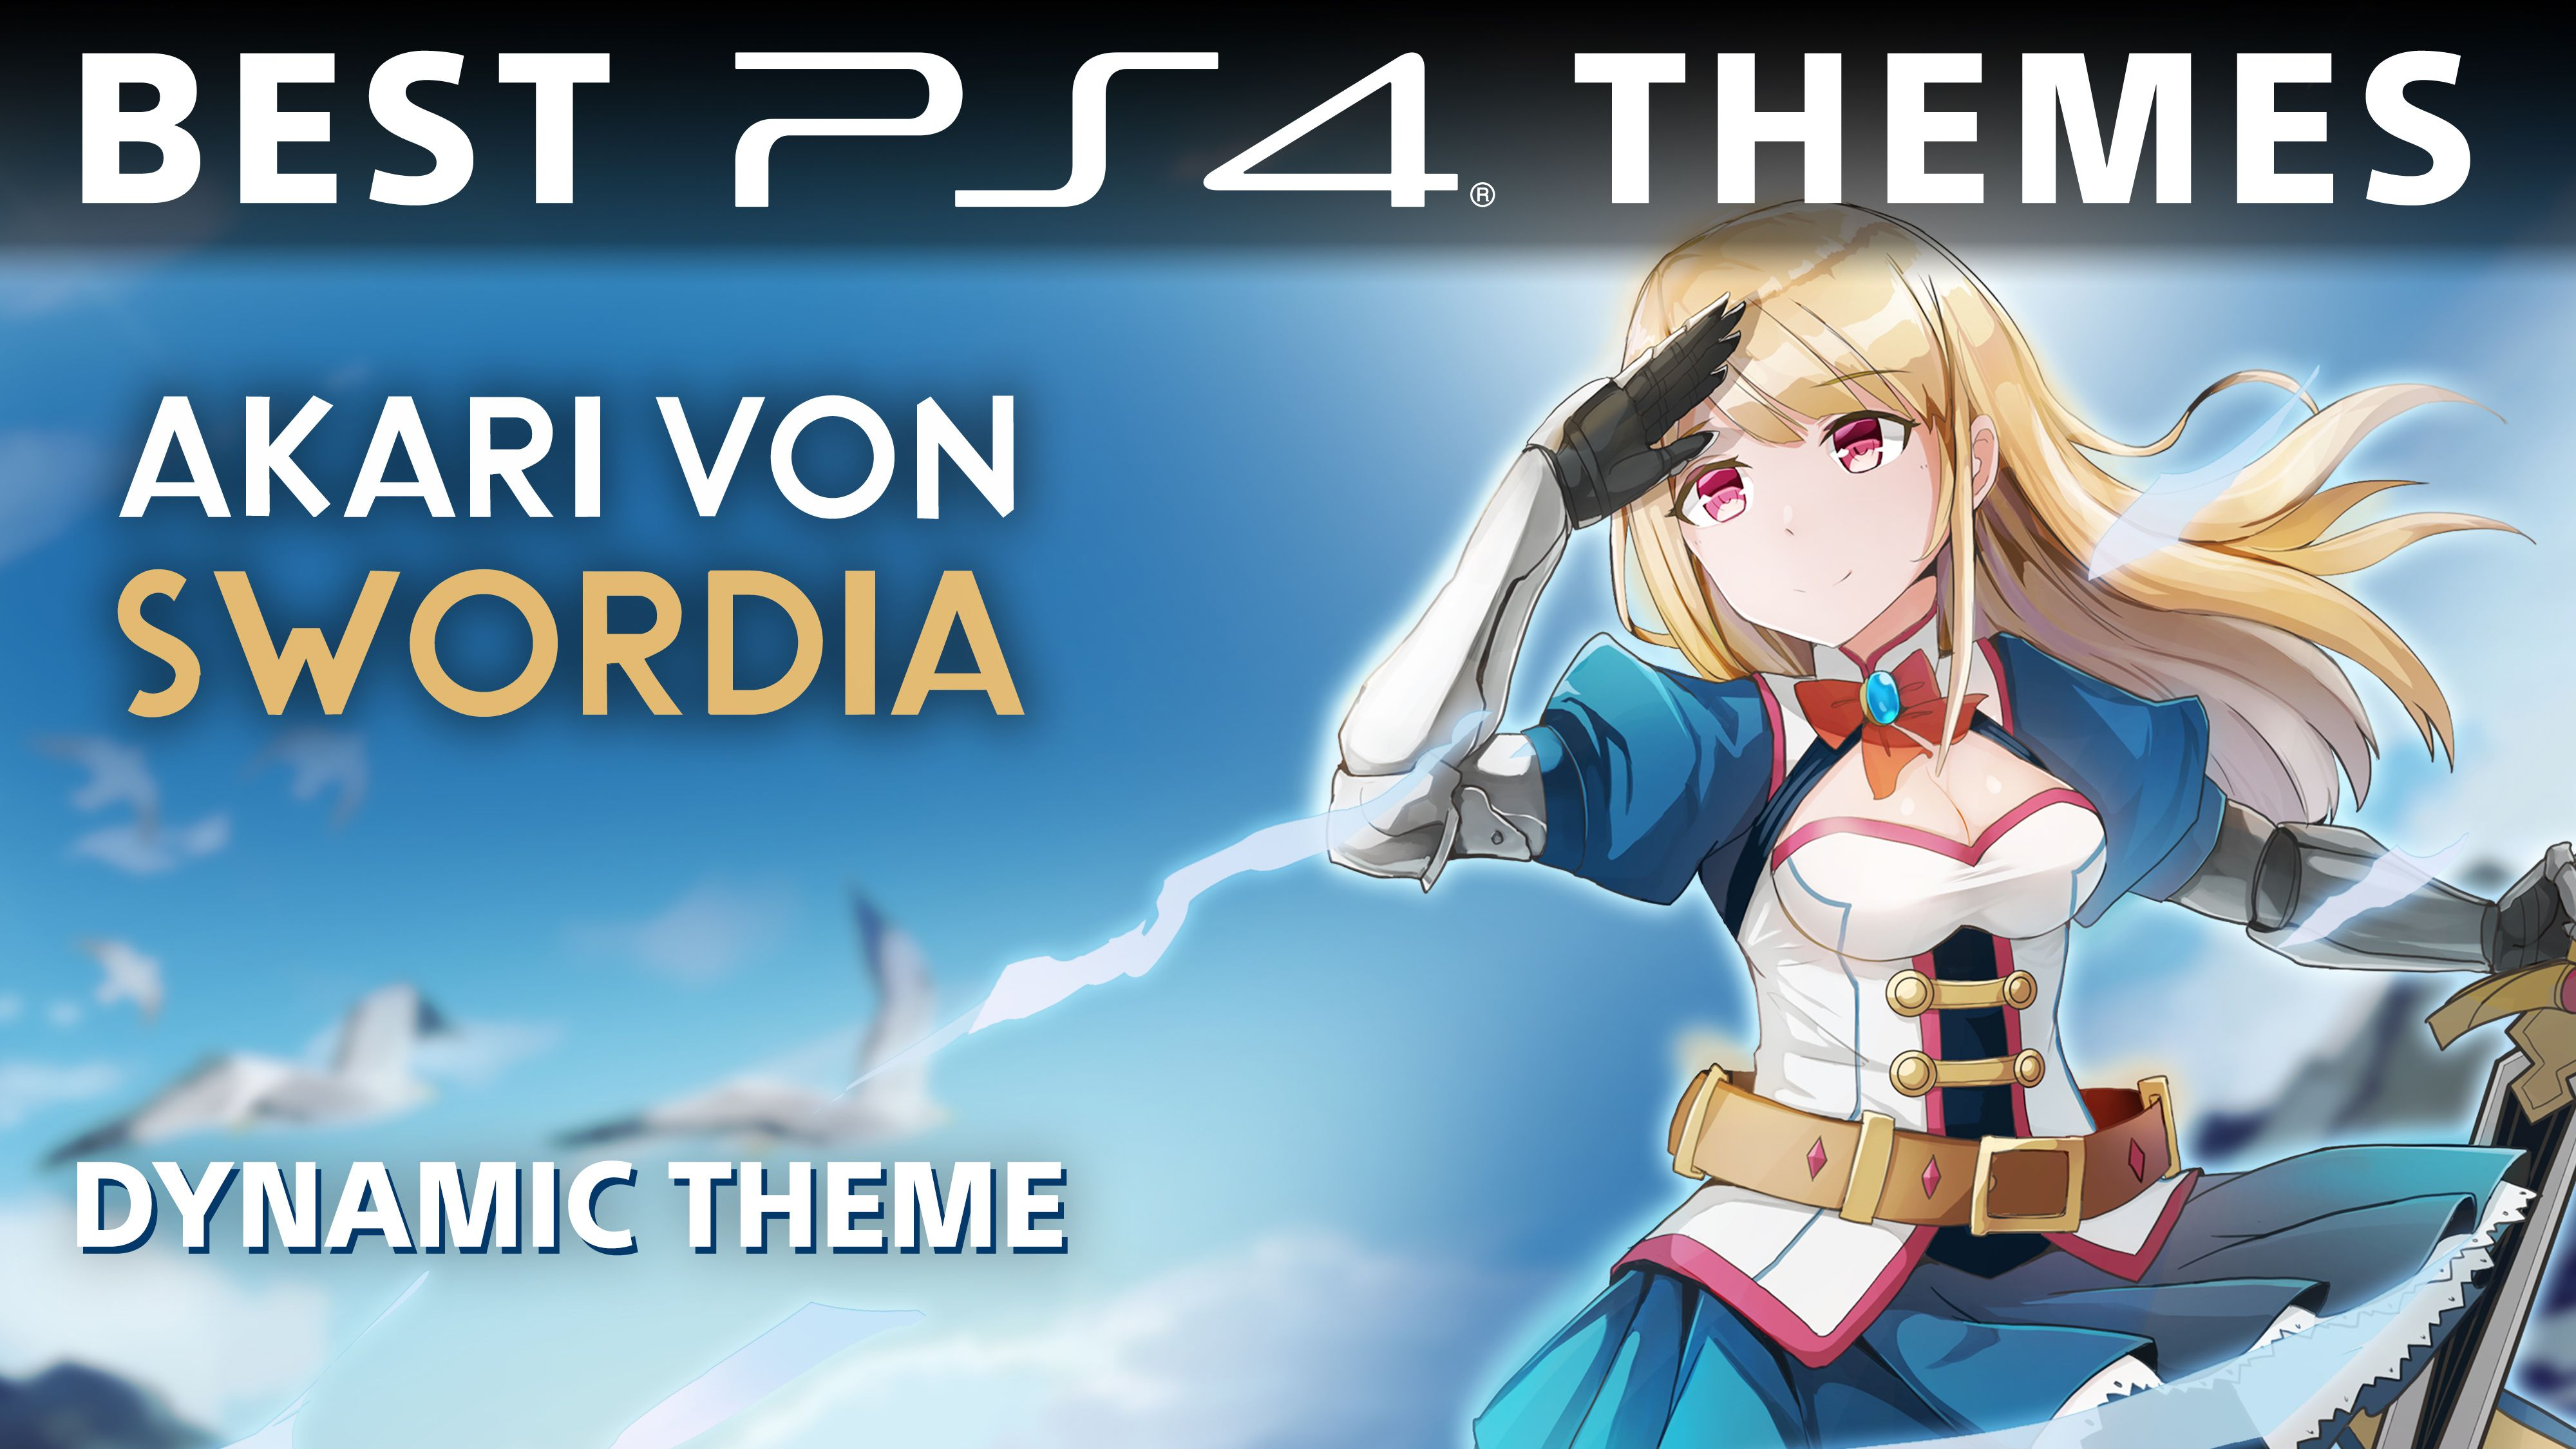 Pin by Top Rated on Best PS4 Themes | Playstation, Ps4, Zelda